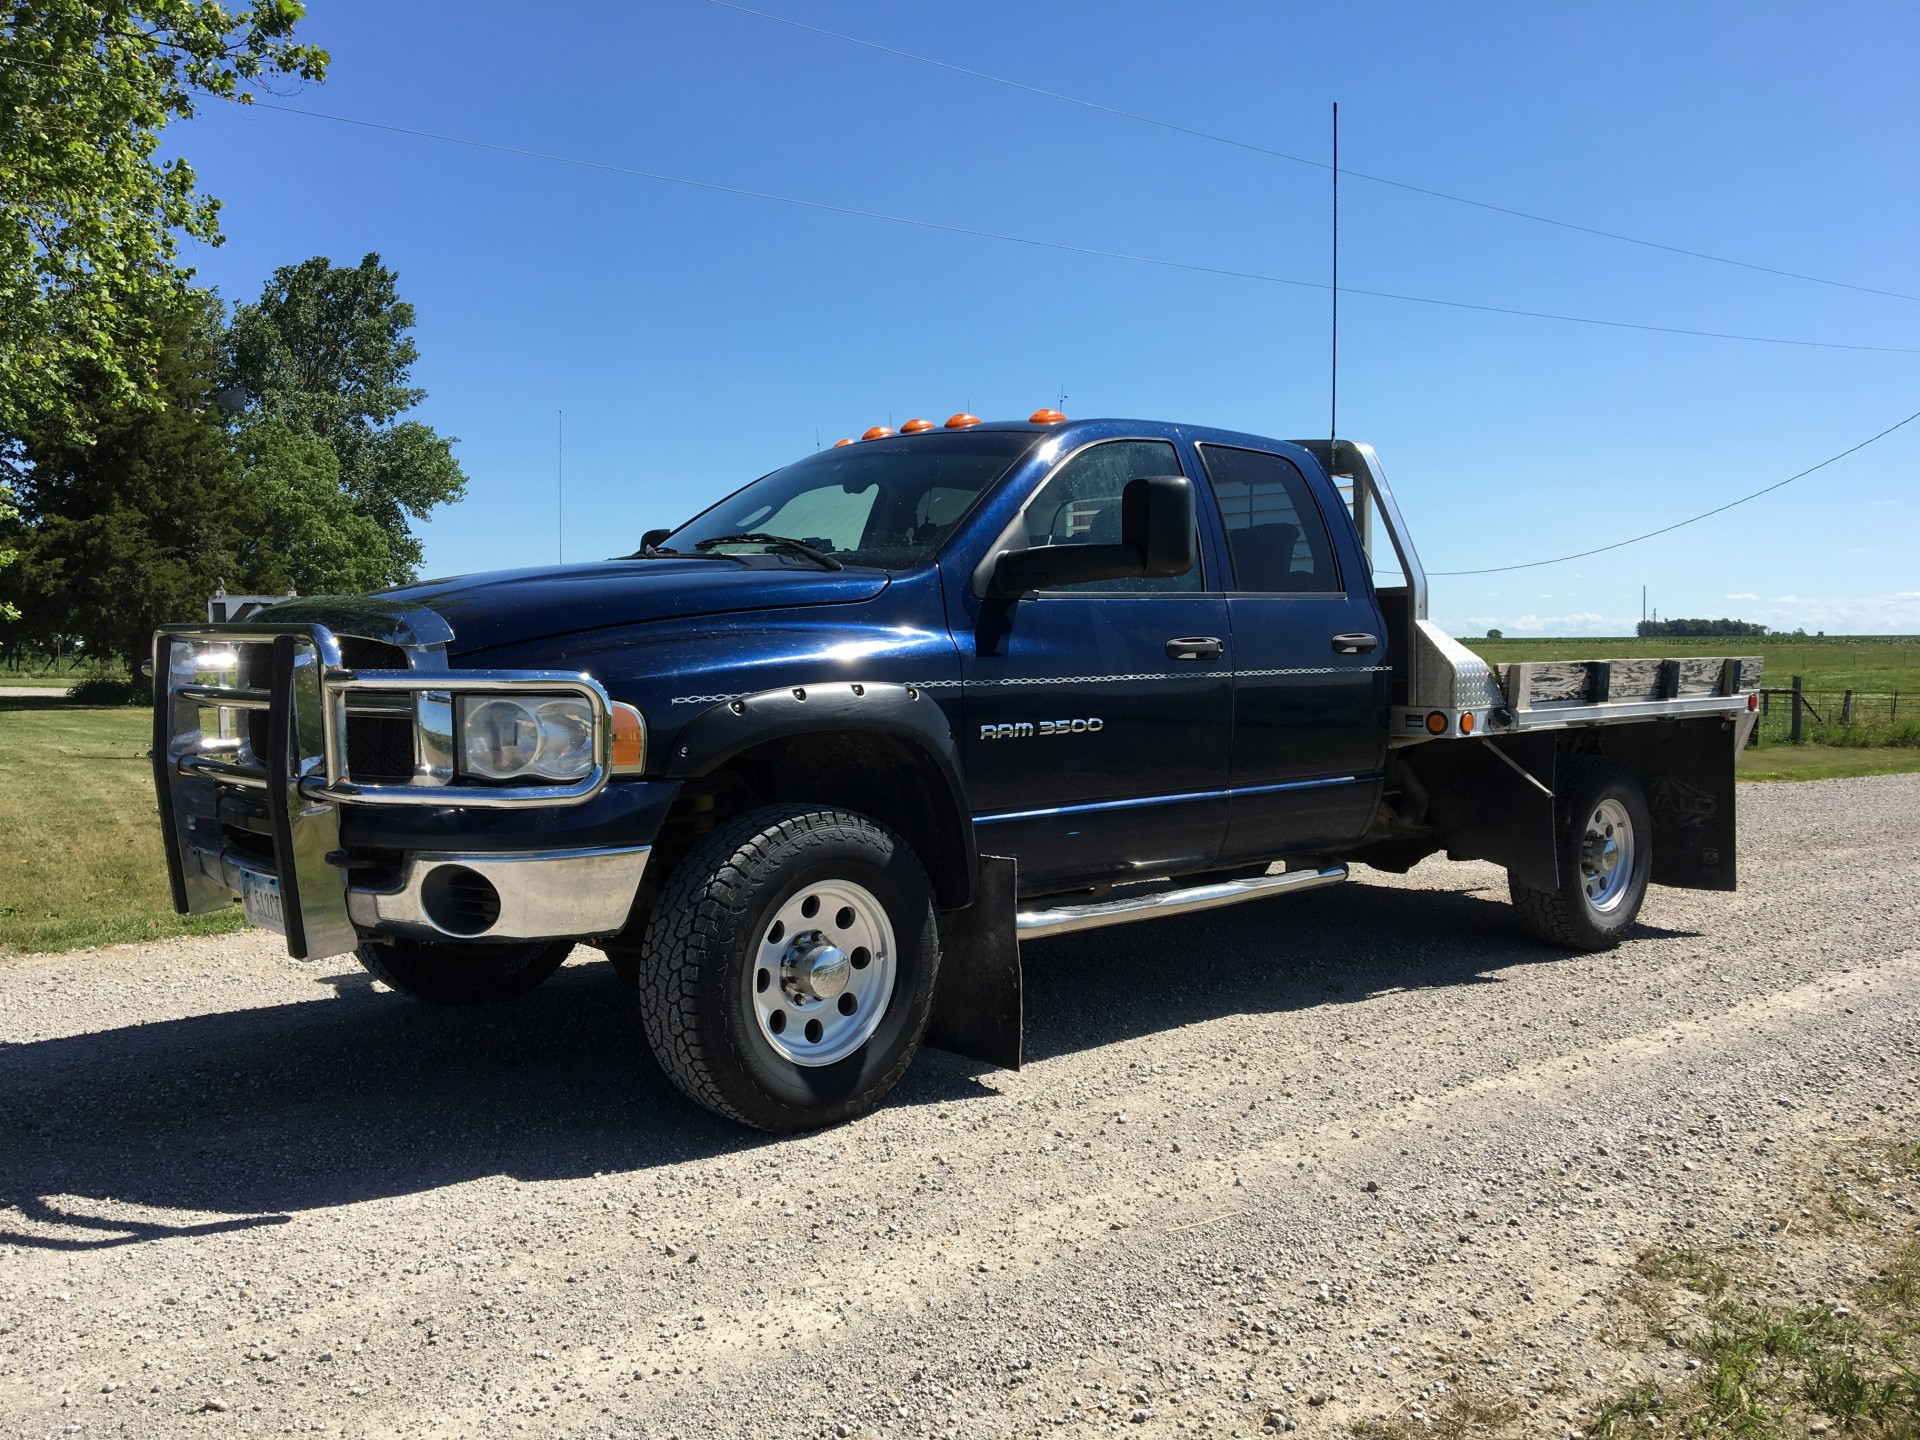 2005 Dodge Ram 3500 4x4 4 Door Srw 5 9 Cummins 6 Speed Manual Alum Flatbed